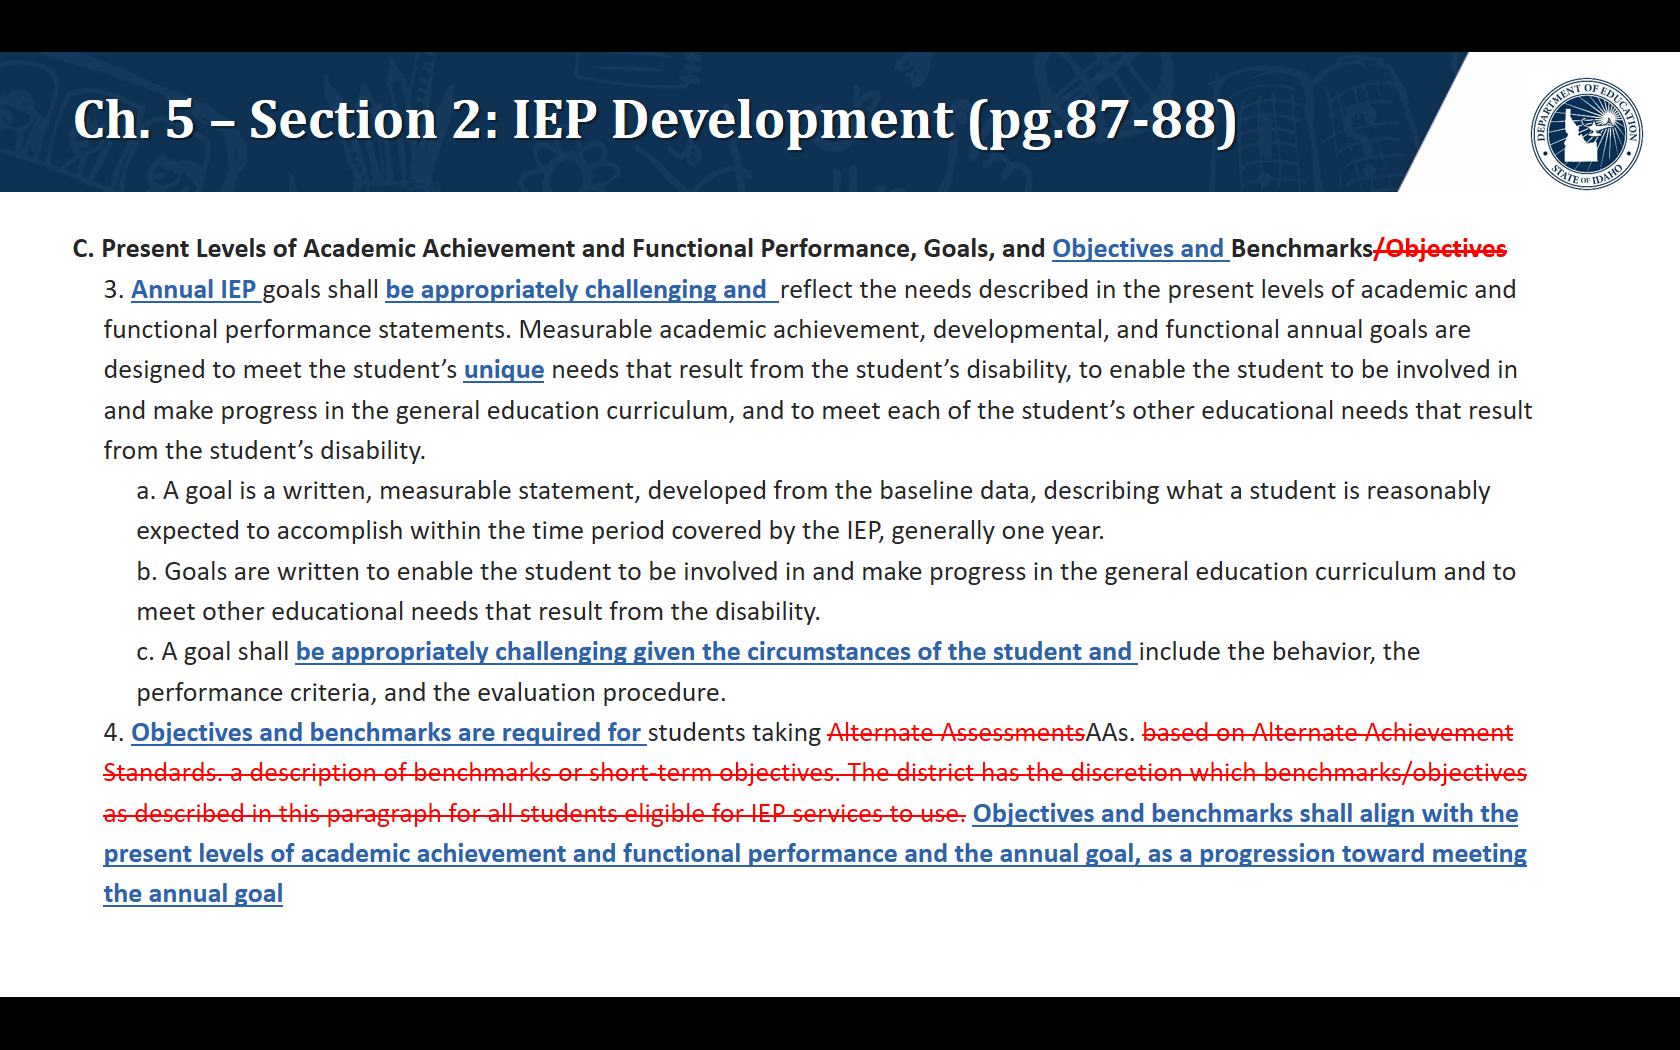 C. Present Levels of Academic Achievement and Functional Performance, Goals, and Objectives and Benchmarks 3. Annual IEP goals shall be appropriately challenging and  reflect the needs described in the present levels of academic and functional performance statements. Measurable academic achievement, developmental, and functional annual goals are designed to meet the student's unique needs that result from the student's disability, to enable the student to be involved in and make progress in the general education curriculum, and to meet each of the student's other educational needs that result from the student's disability. a. A goal is a written, measurable statement, developed from the baseline data, describing what a student is reasonably expected to accomplish within the time period covered by the IEP, generally one year. b. Goals are written to enable the student to be involved in and make progress in the general education curriculum and to meet other educational needs that result from the disability. c. A goal shall be appropriately challenging given the circumstances of the student and include the behavior, the performance criteria, and the evaluation procedure. 4. Objectives and benchmarks are required for students taking AAs. Objectives and benchmarks shall align with the present levels of academic achievement and functional performance and the annual goal, as a progression toward meeting the annual goal